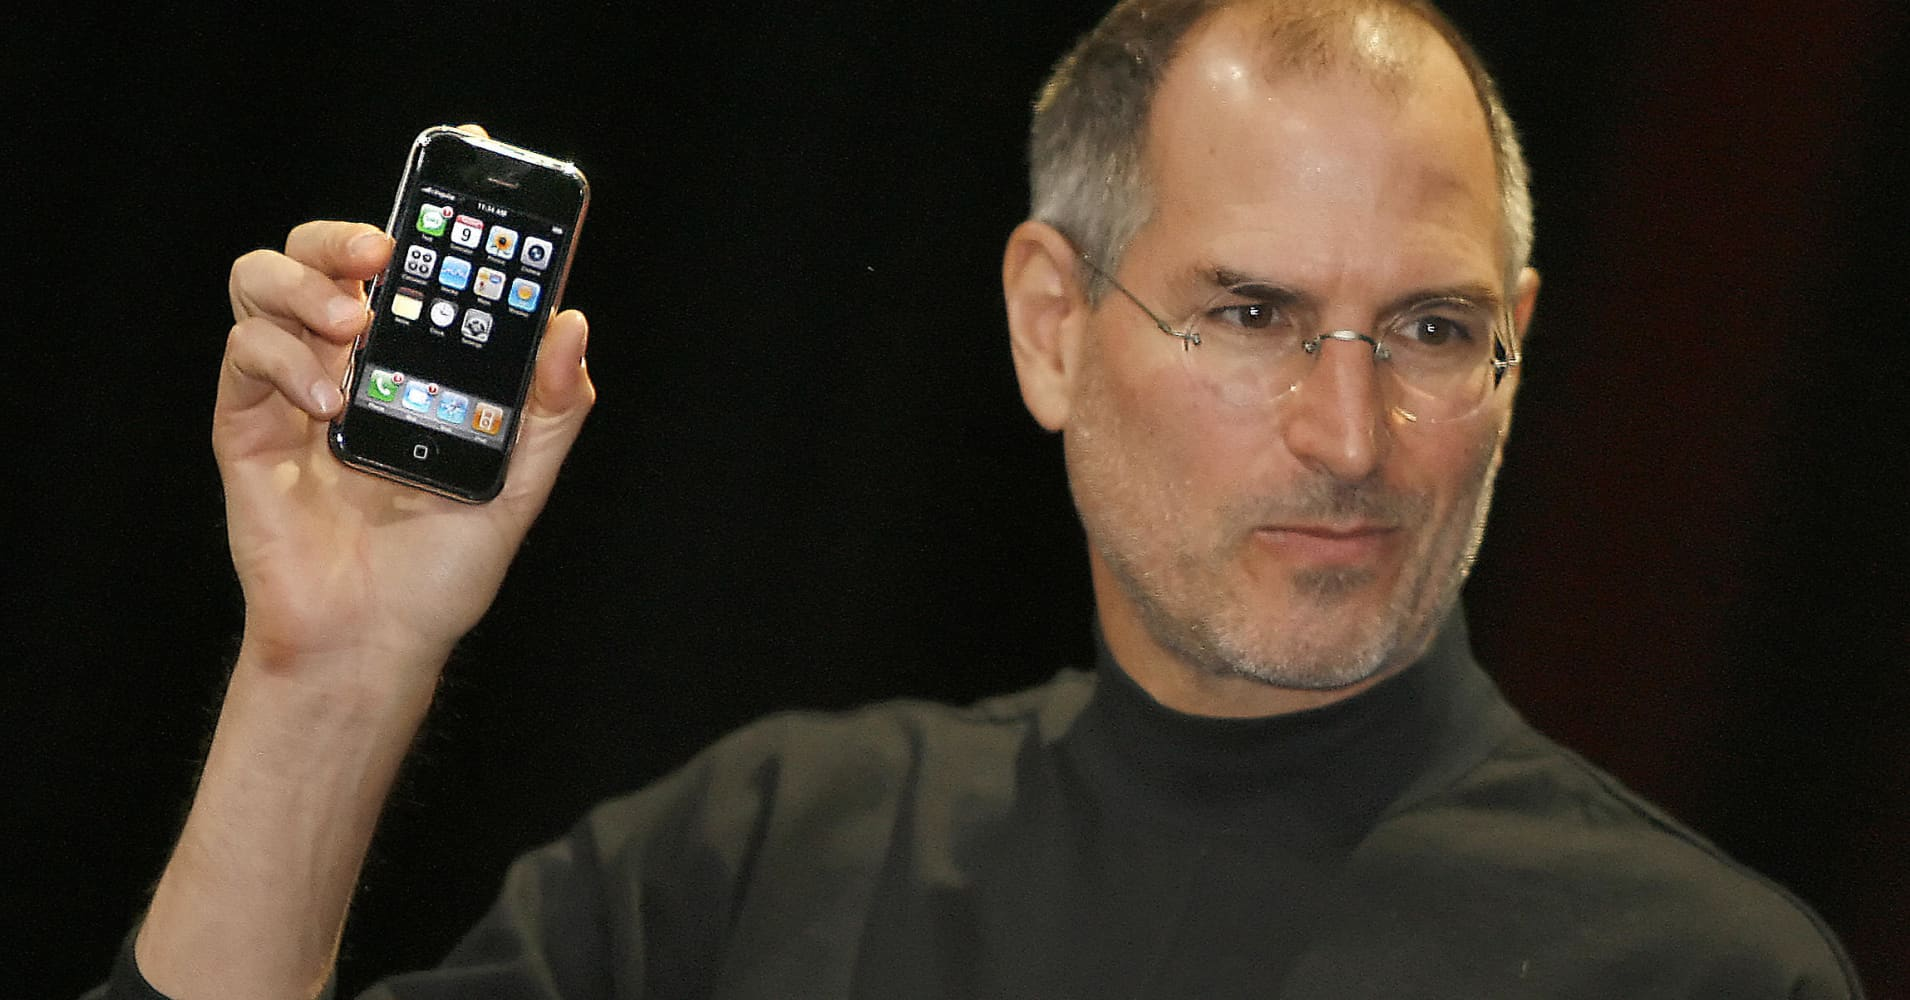 Steve Jobs holds up the original iPhone at the Macworld Conference 09 January 2007 in San Francisco, California.